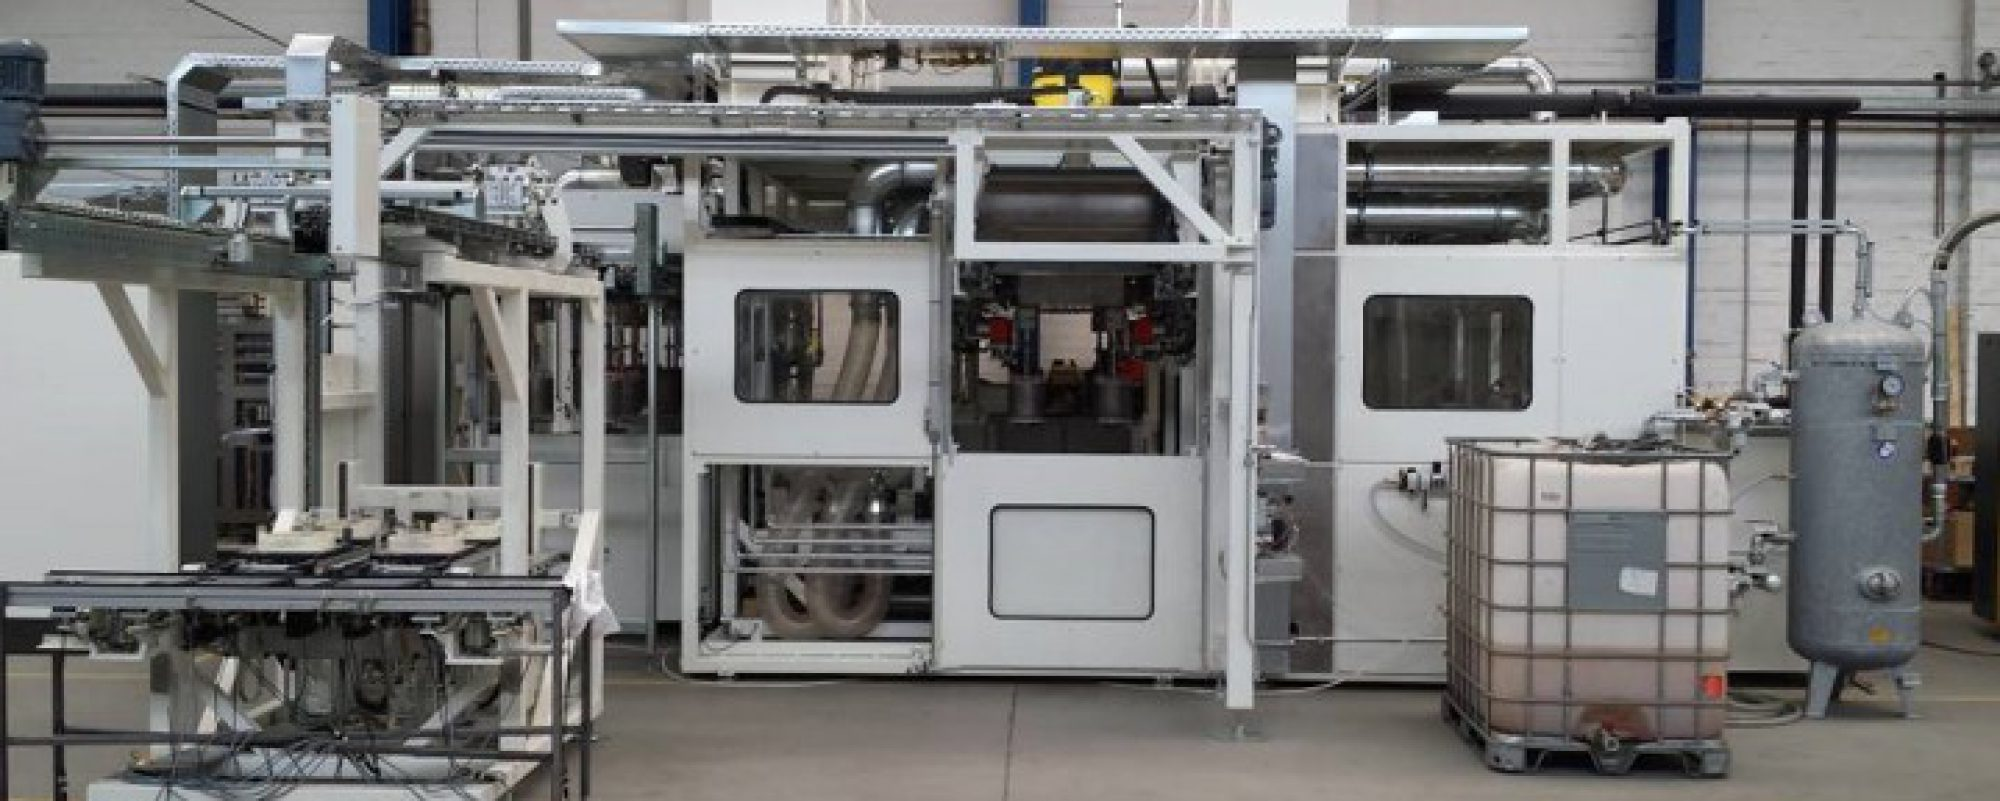 Automotive Resistance heating and Trickling impregnation unit from Meier